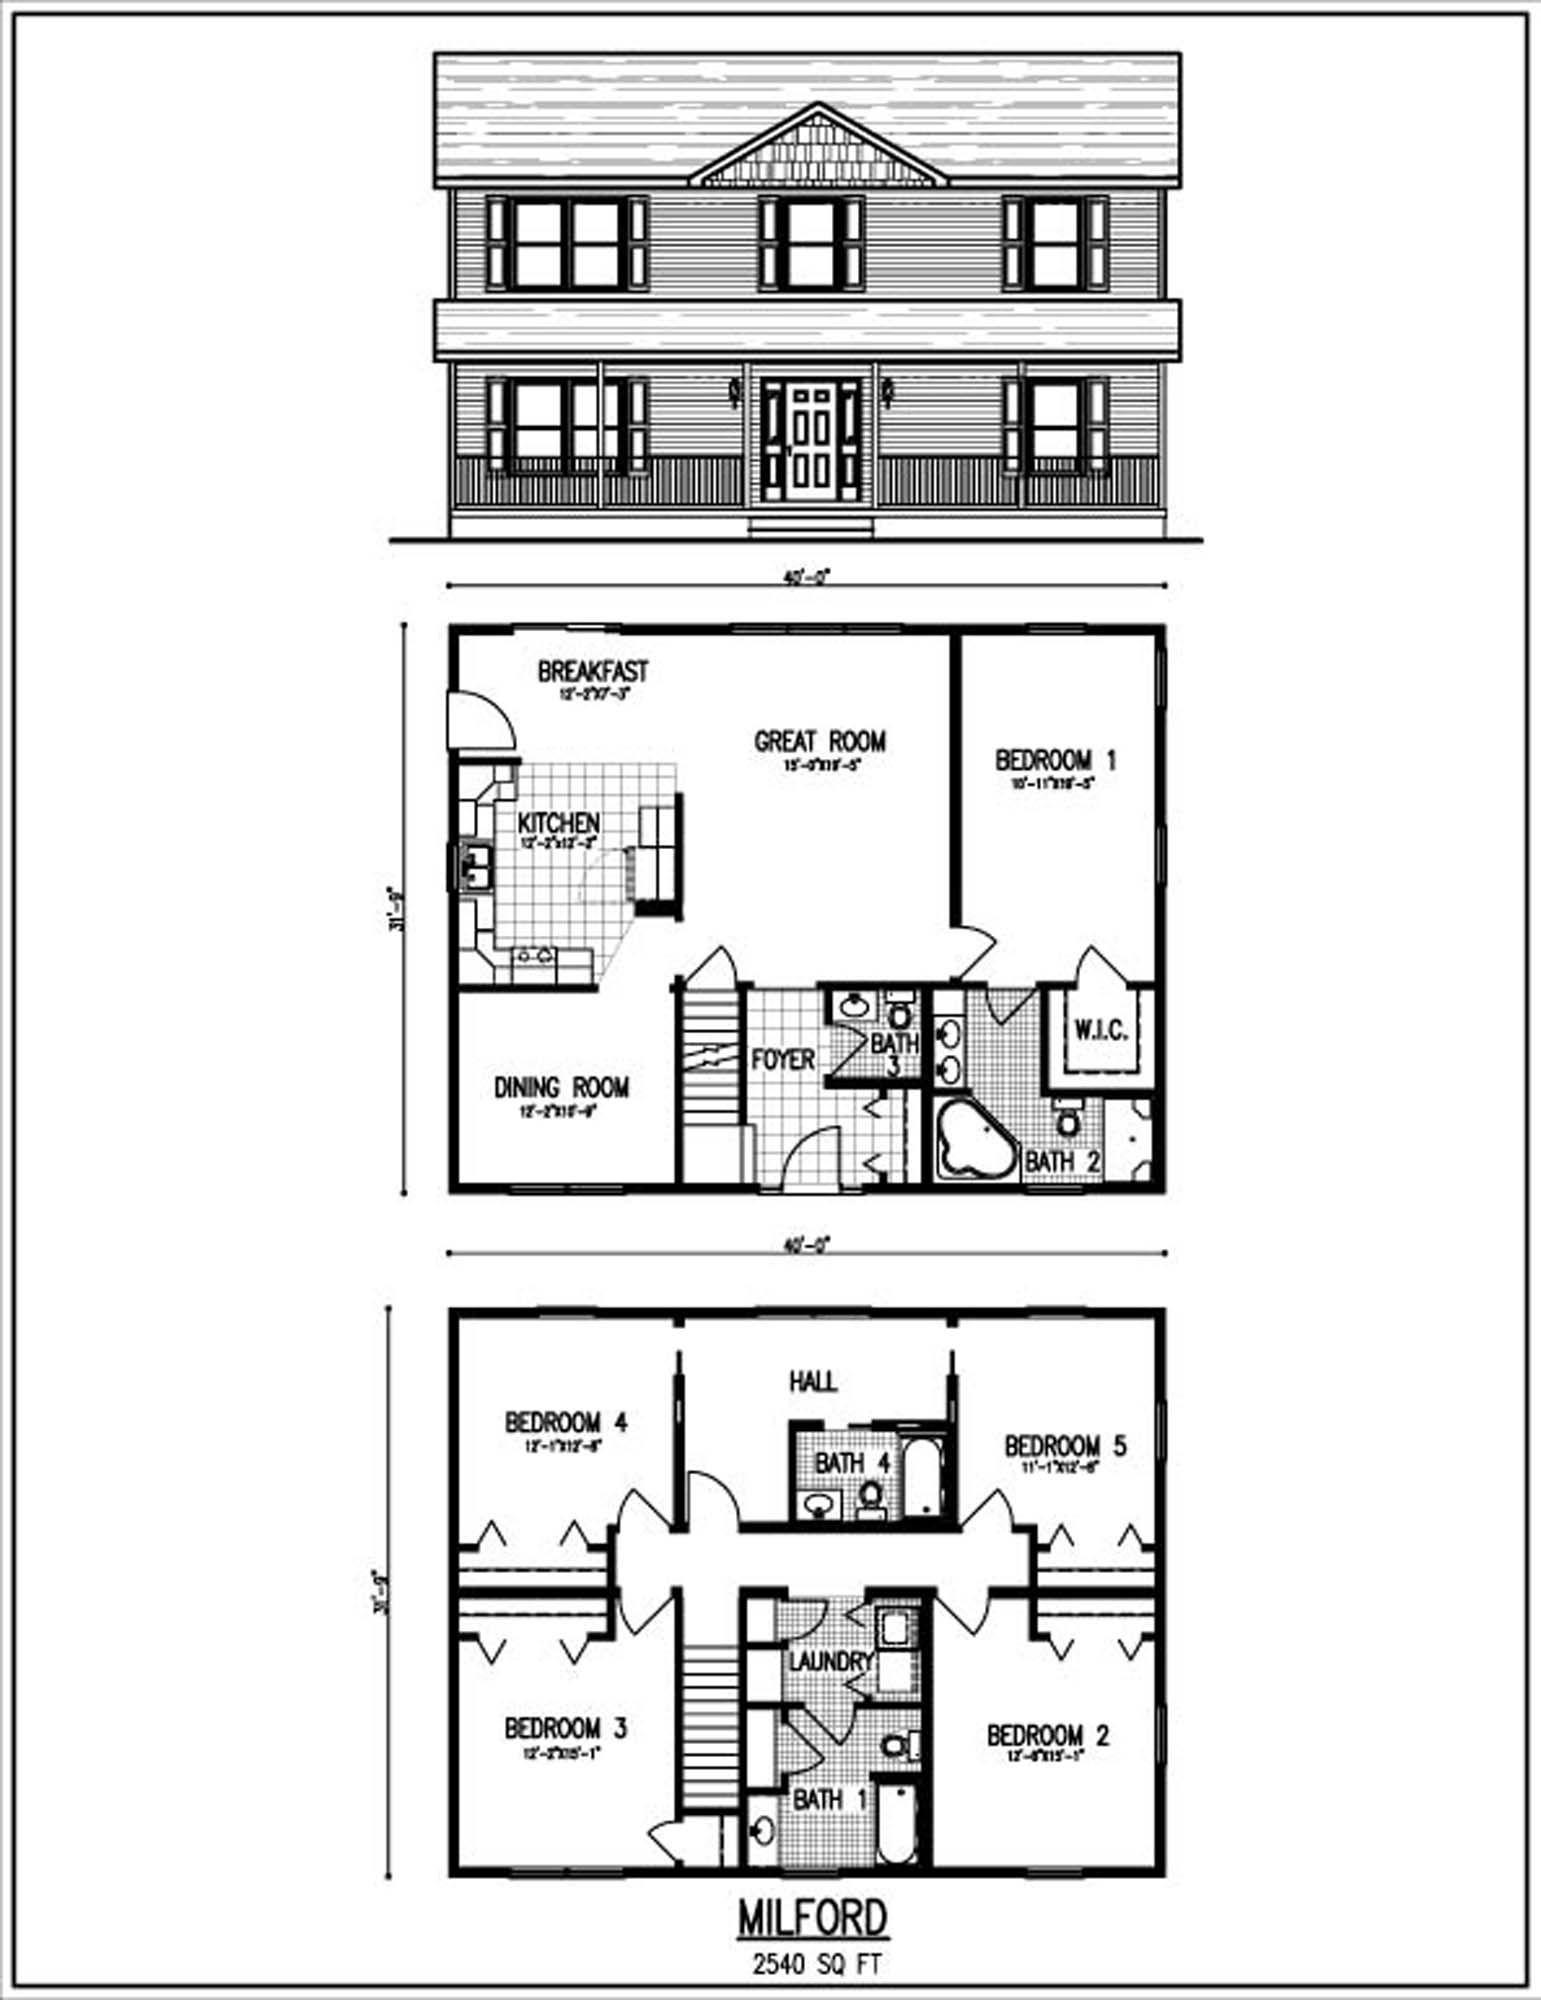 Beautiful 2 story house plans with upper level floor plan for Small two story cabin plans